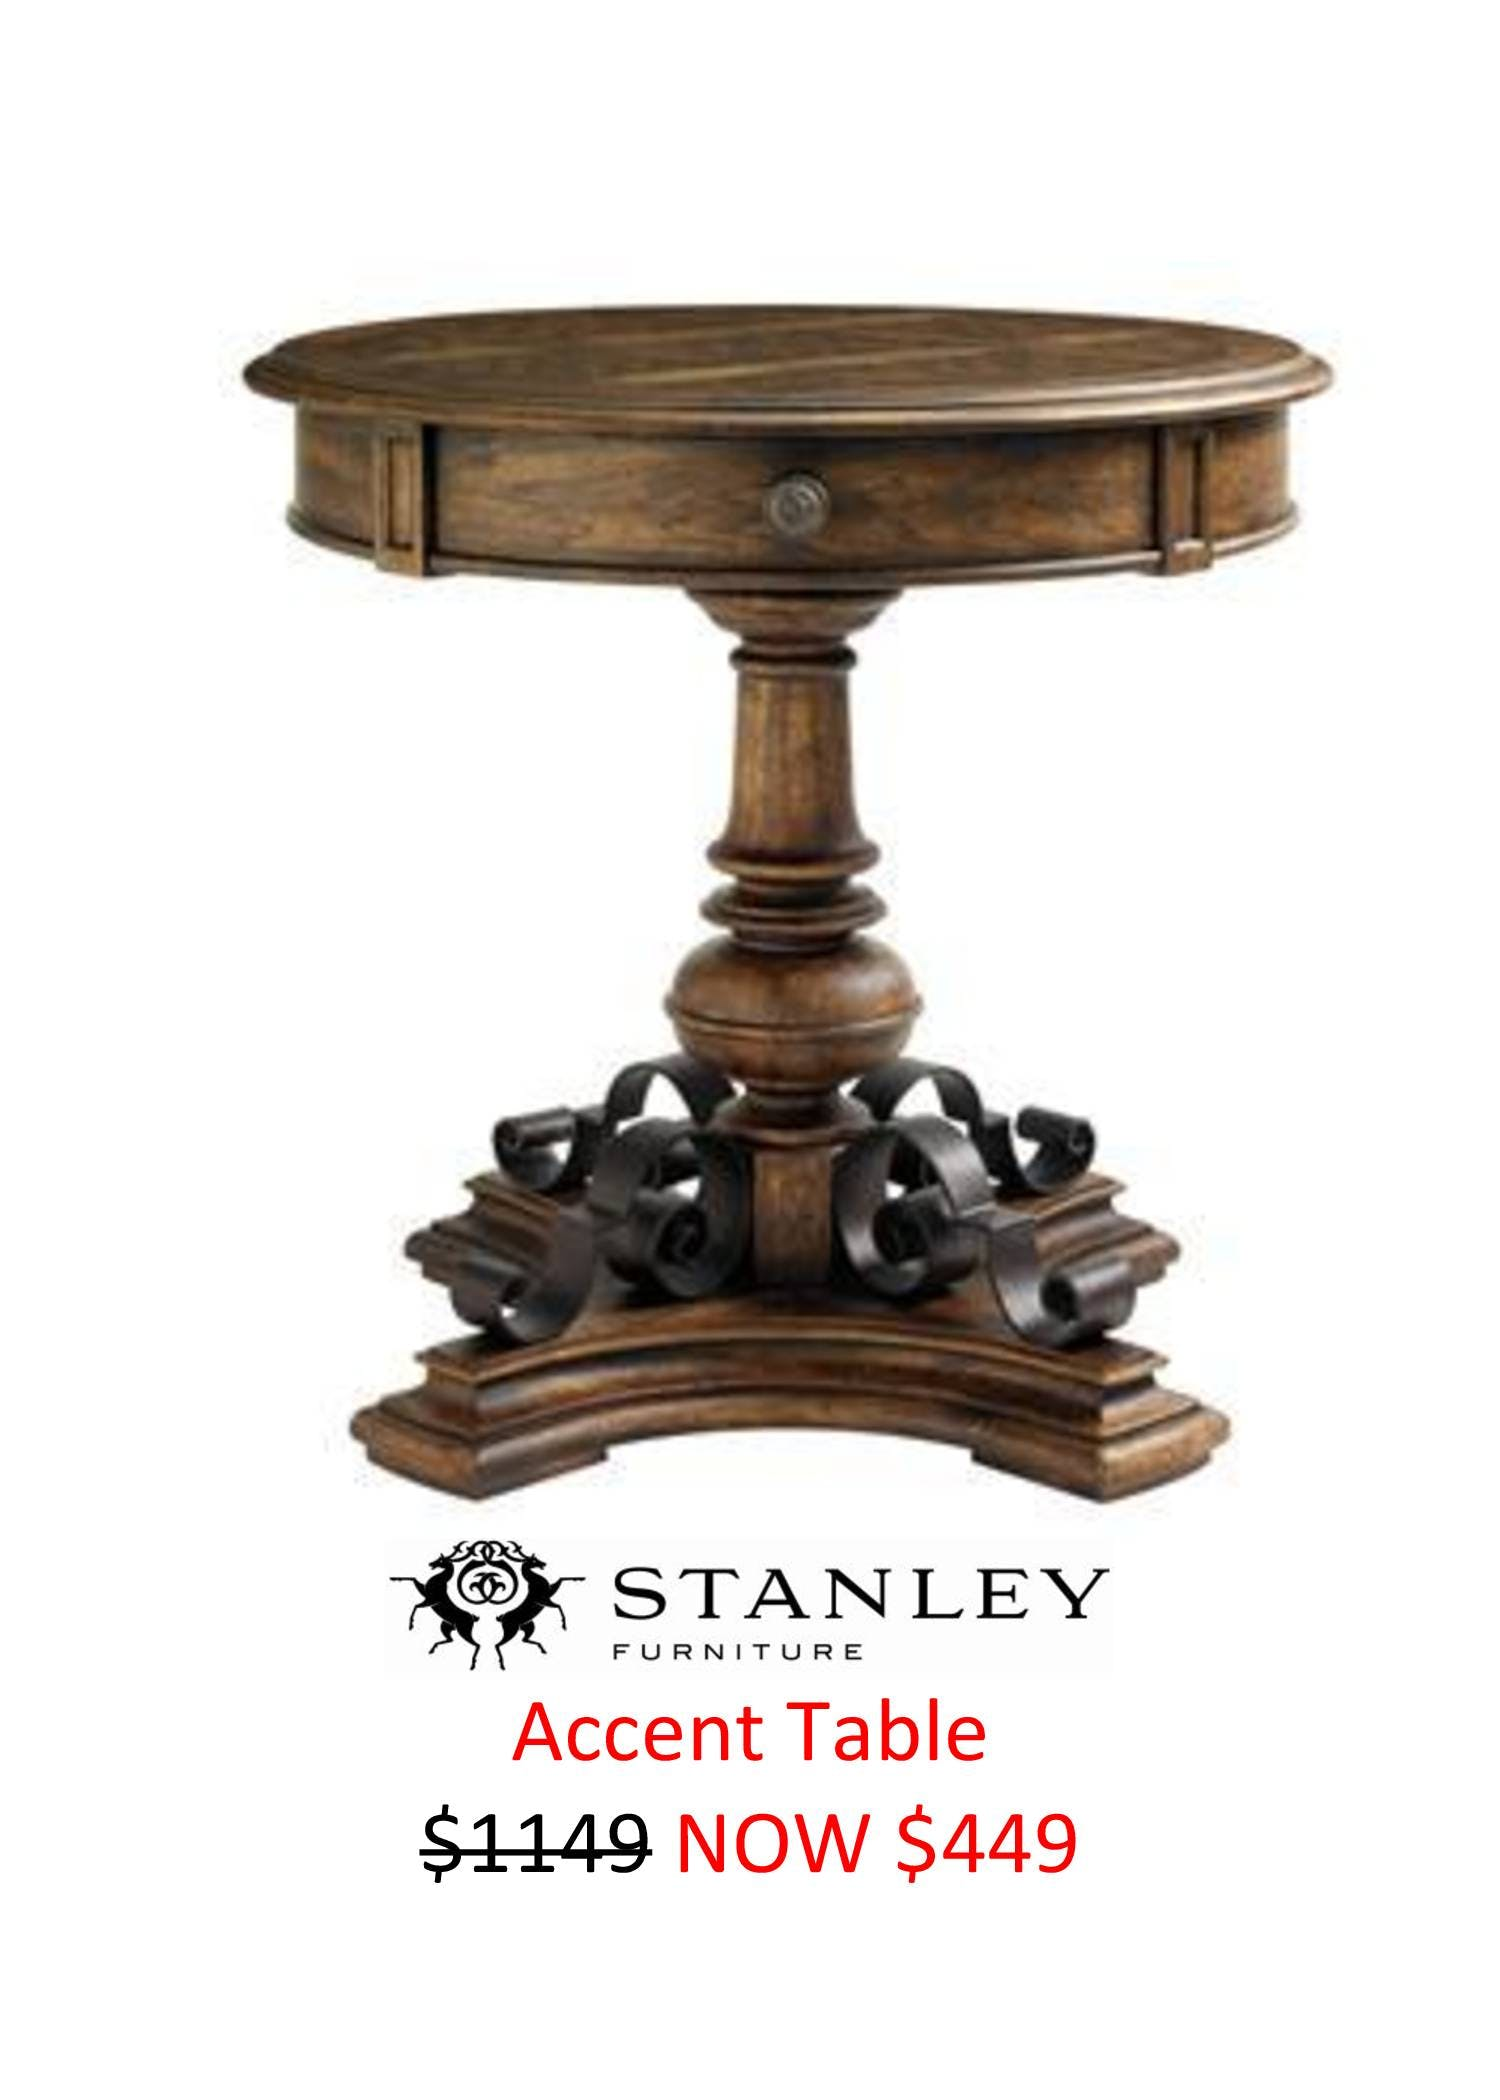 save clearance items thornton furniture bowling green stanley accent tables wine holder trestle base outdoor dining sets unusual home decor target penneys broadmoore pedestal end